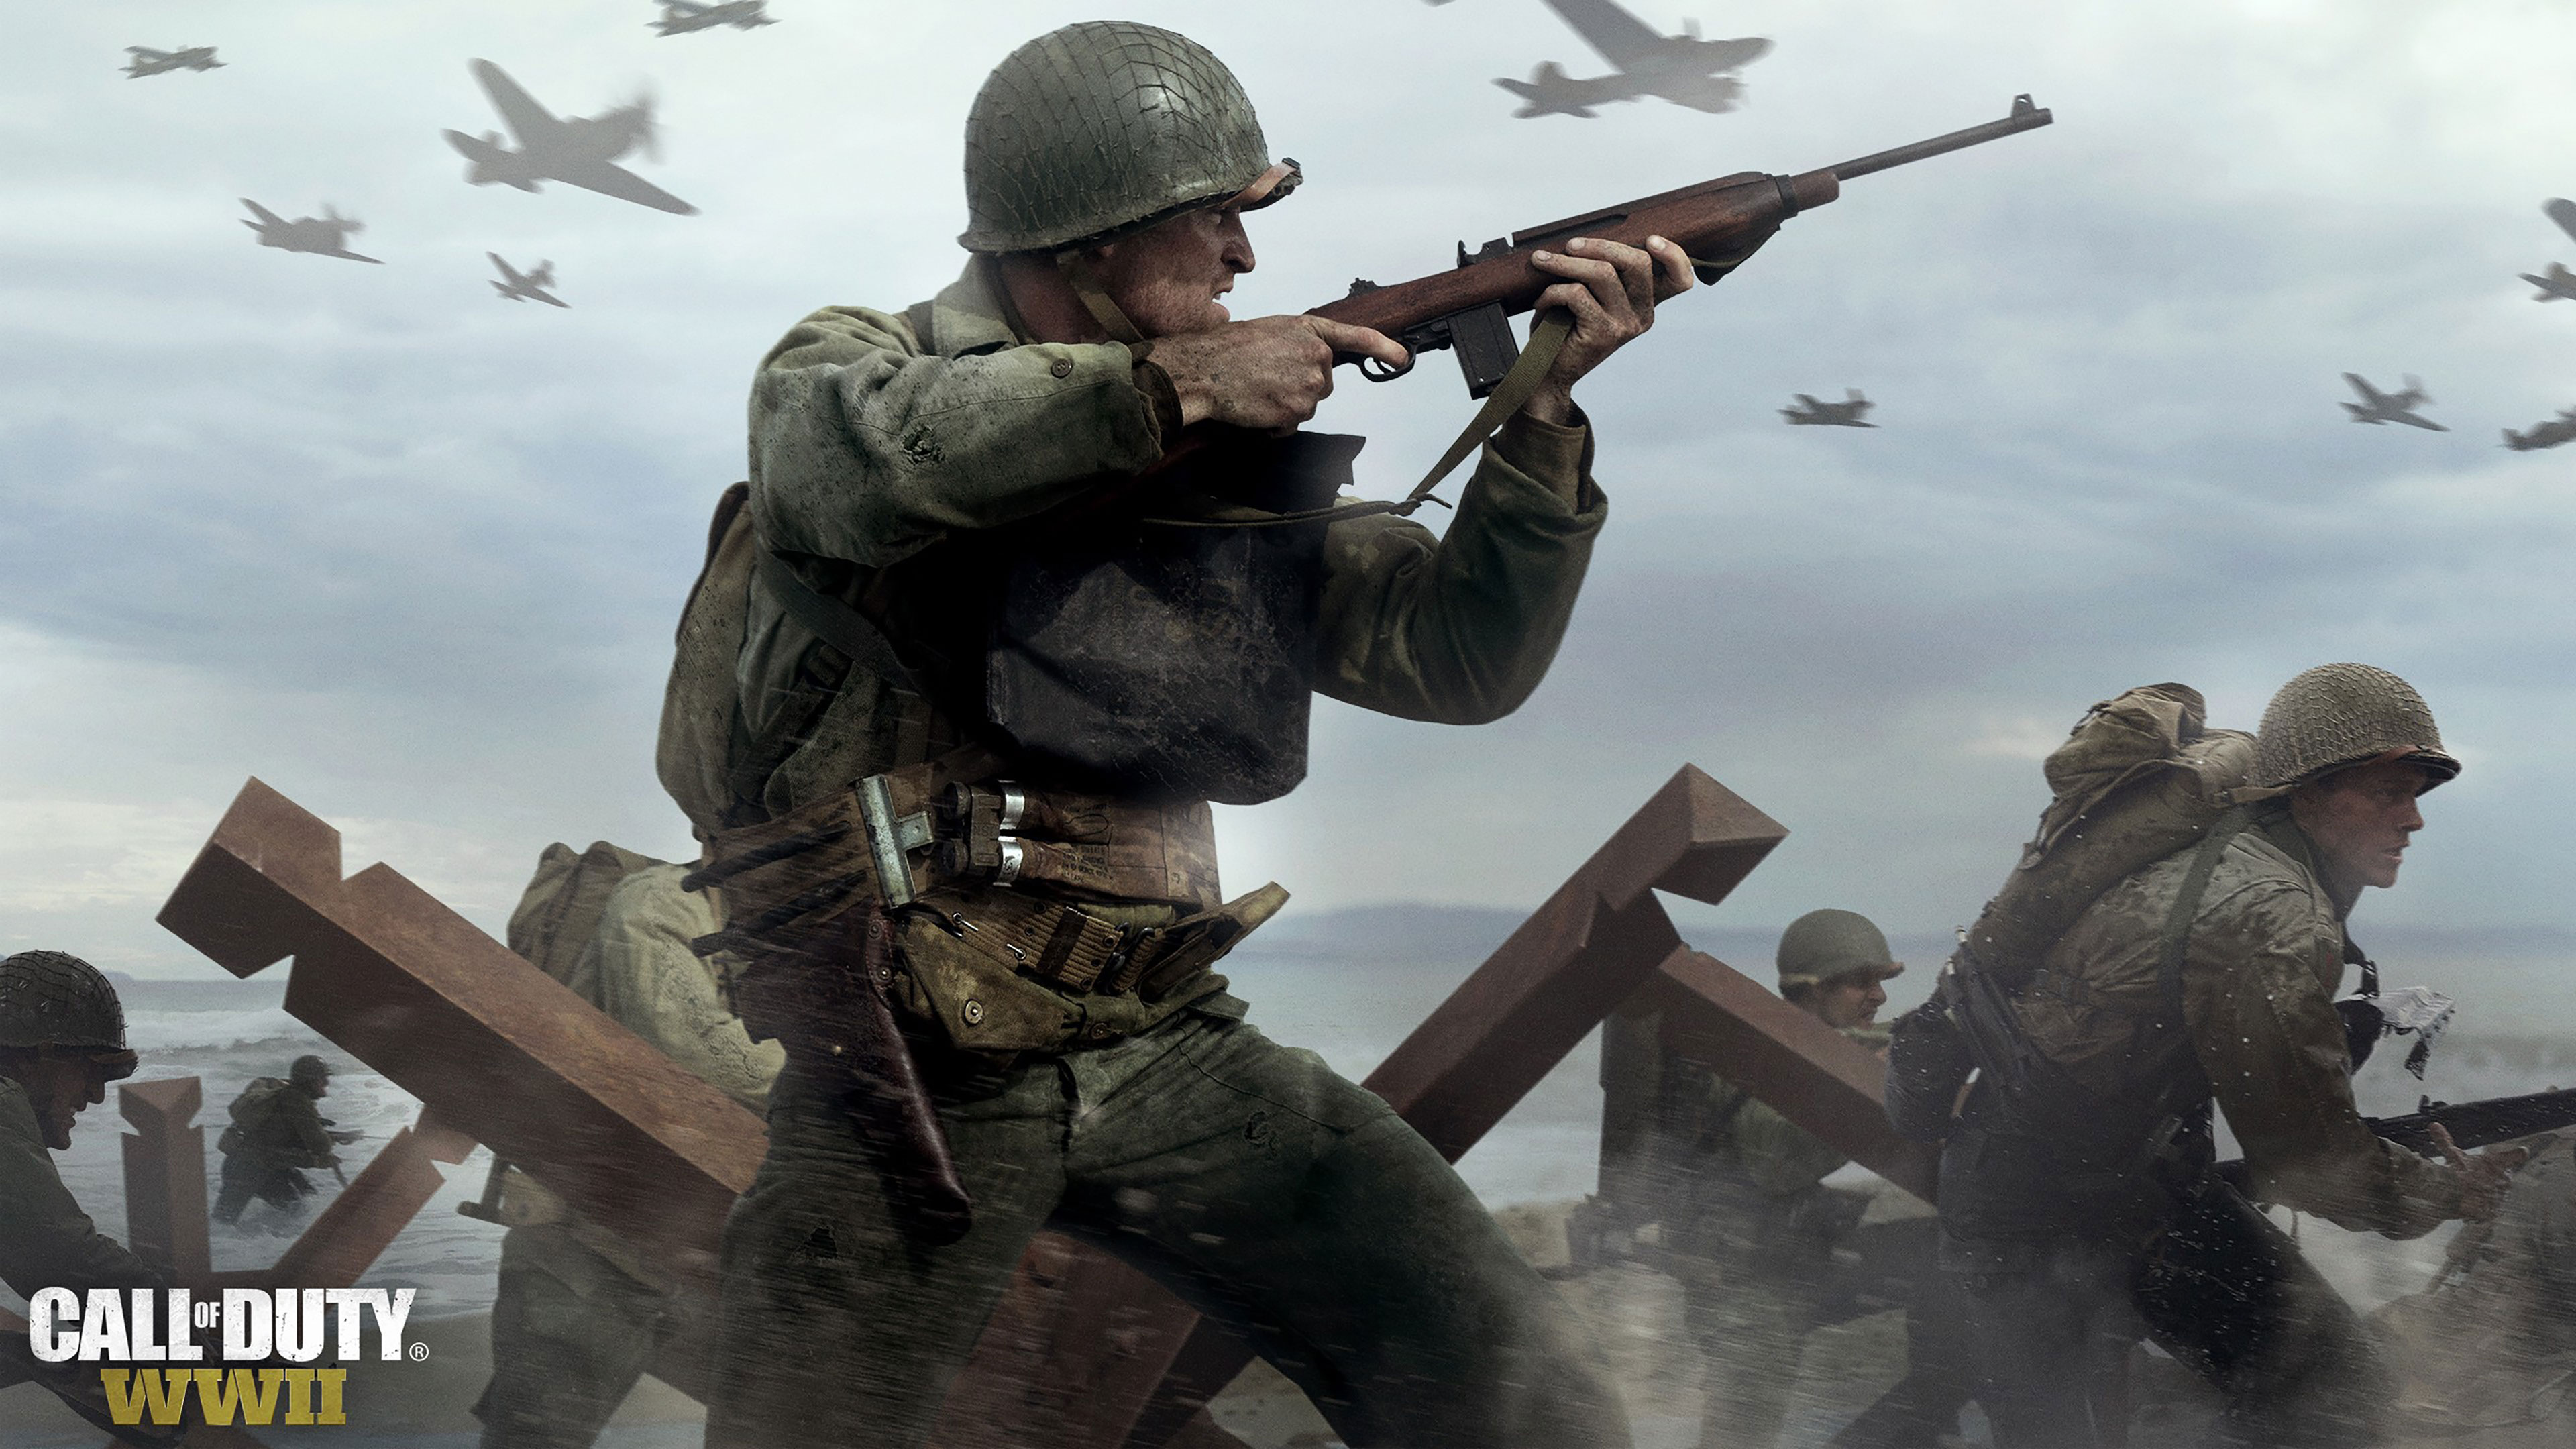 call of duty wwii wallpapers in ultra hd 4k